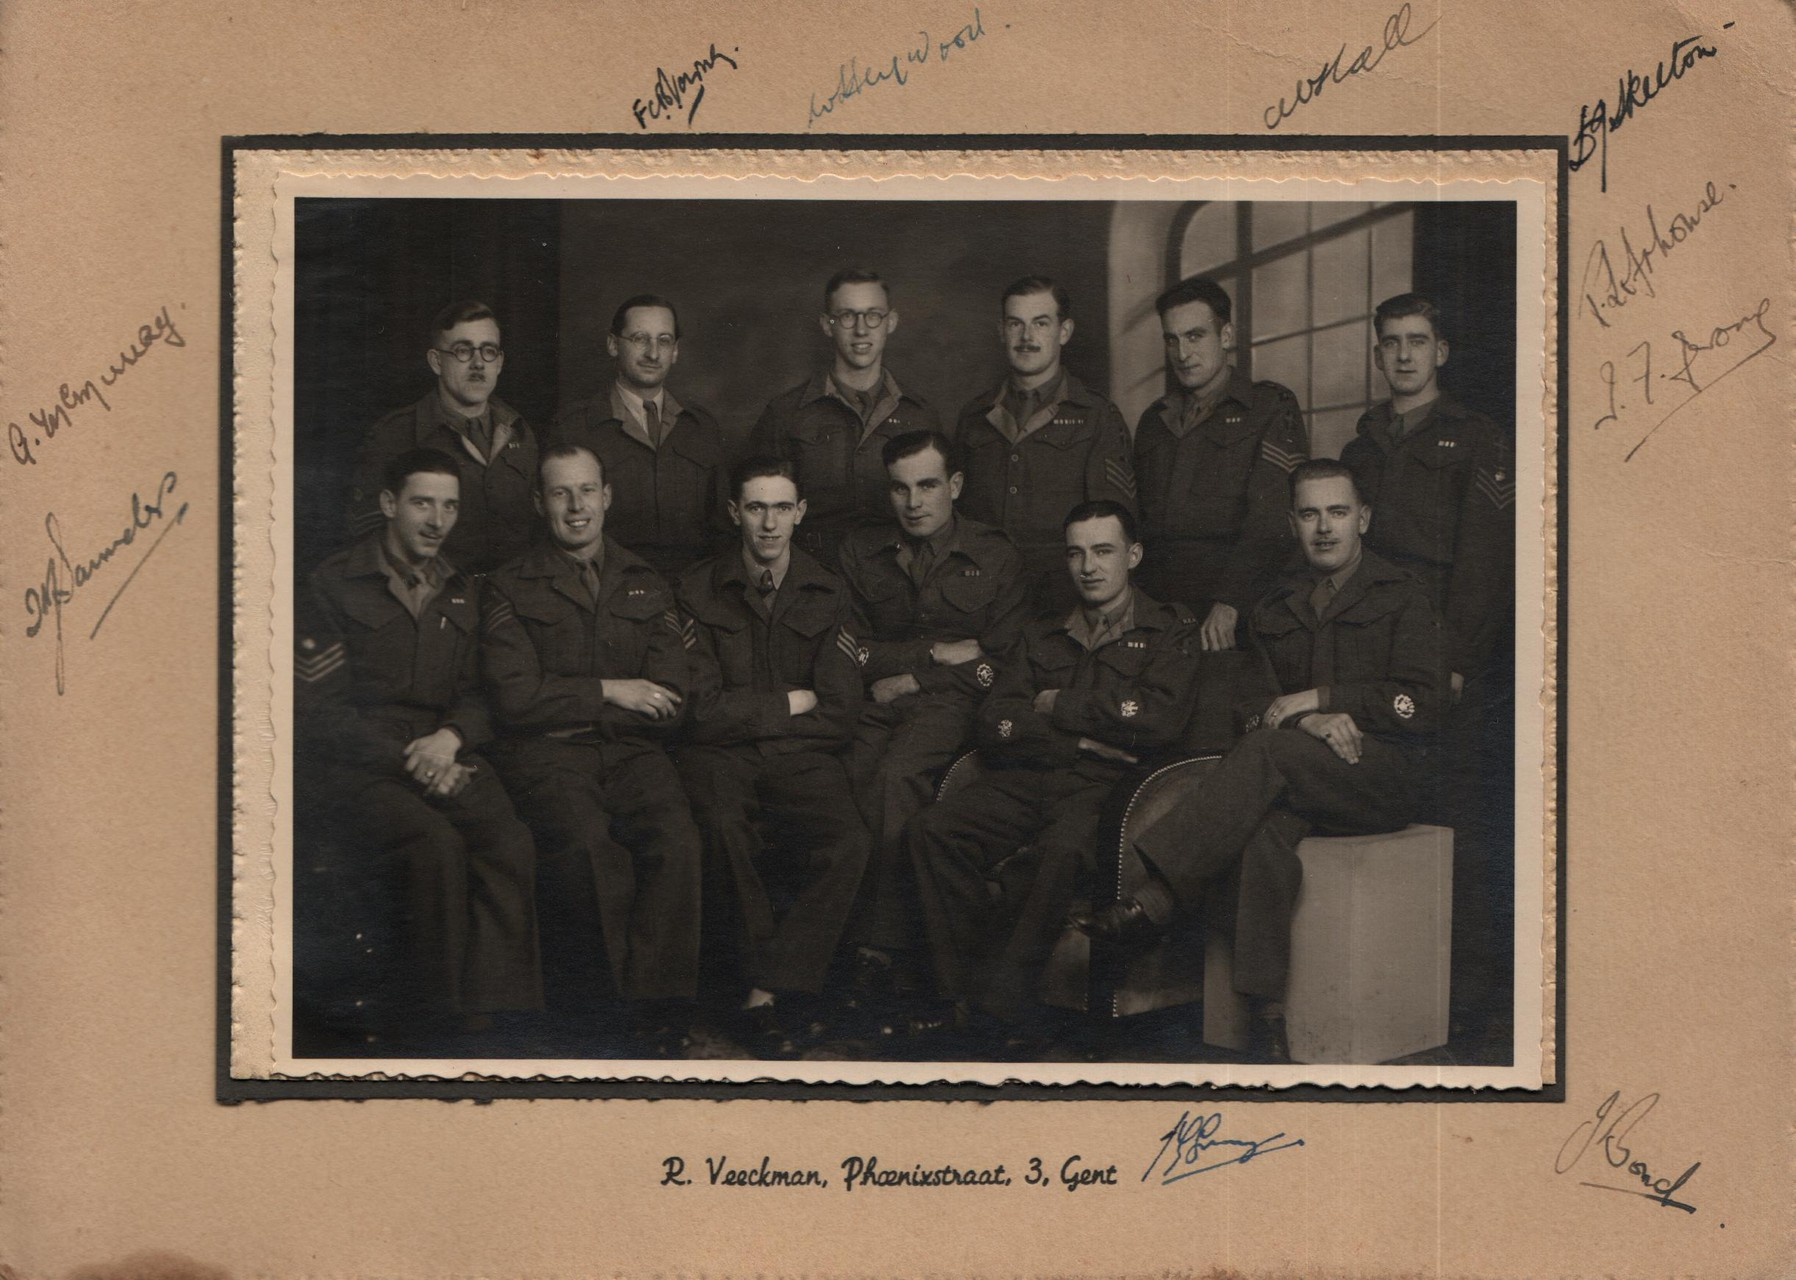 Technical Sergeants Mess REME in Ghent. Last unit David was in during the war. They came back to Aldershot and were demobilised. This photo taken at the end of the war.